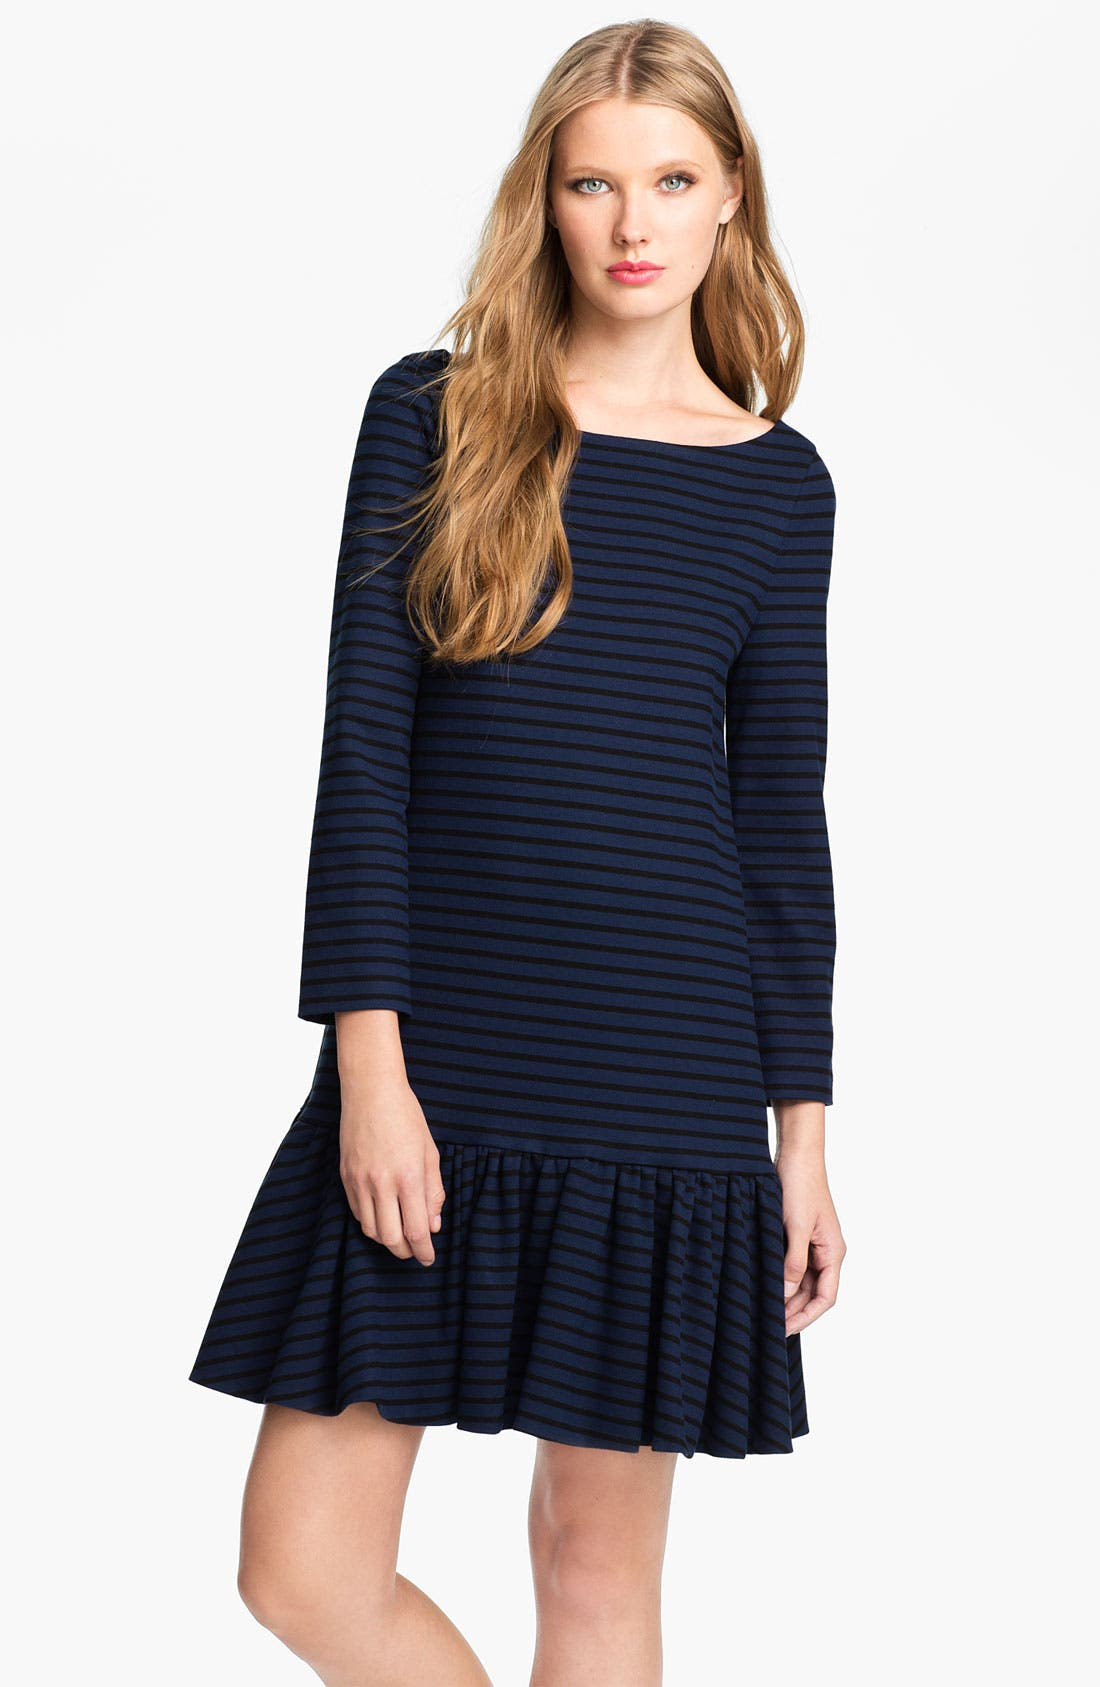 Alternate Image 1 Selected - kate spade new york 'burke' stripe shift dress